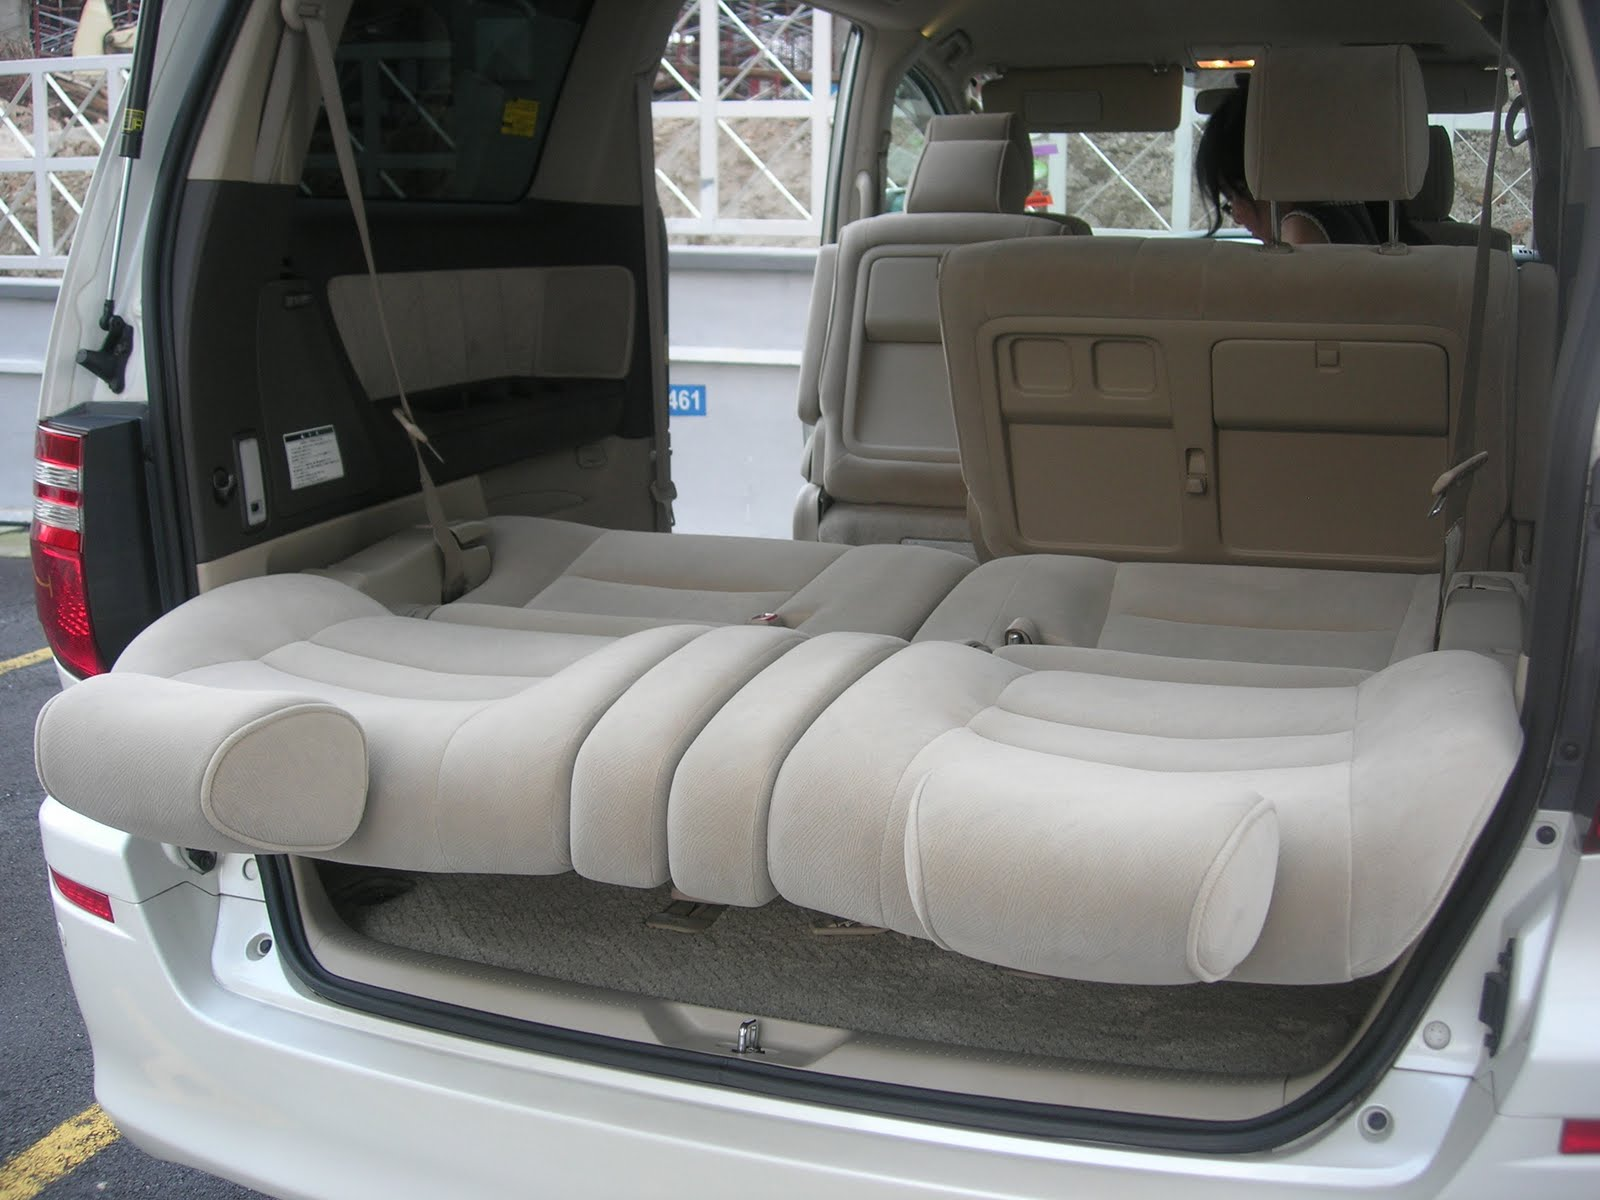 Here is a view from the rear of the car when the 3rd row seats are in flat position when the backrests are lowered